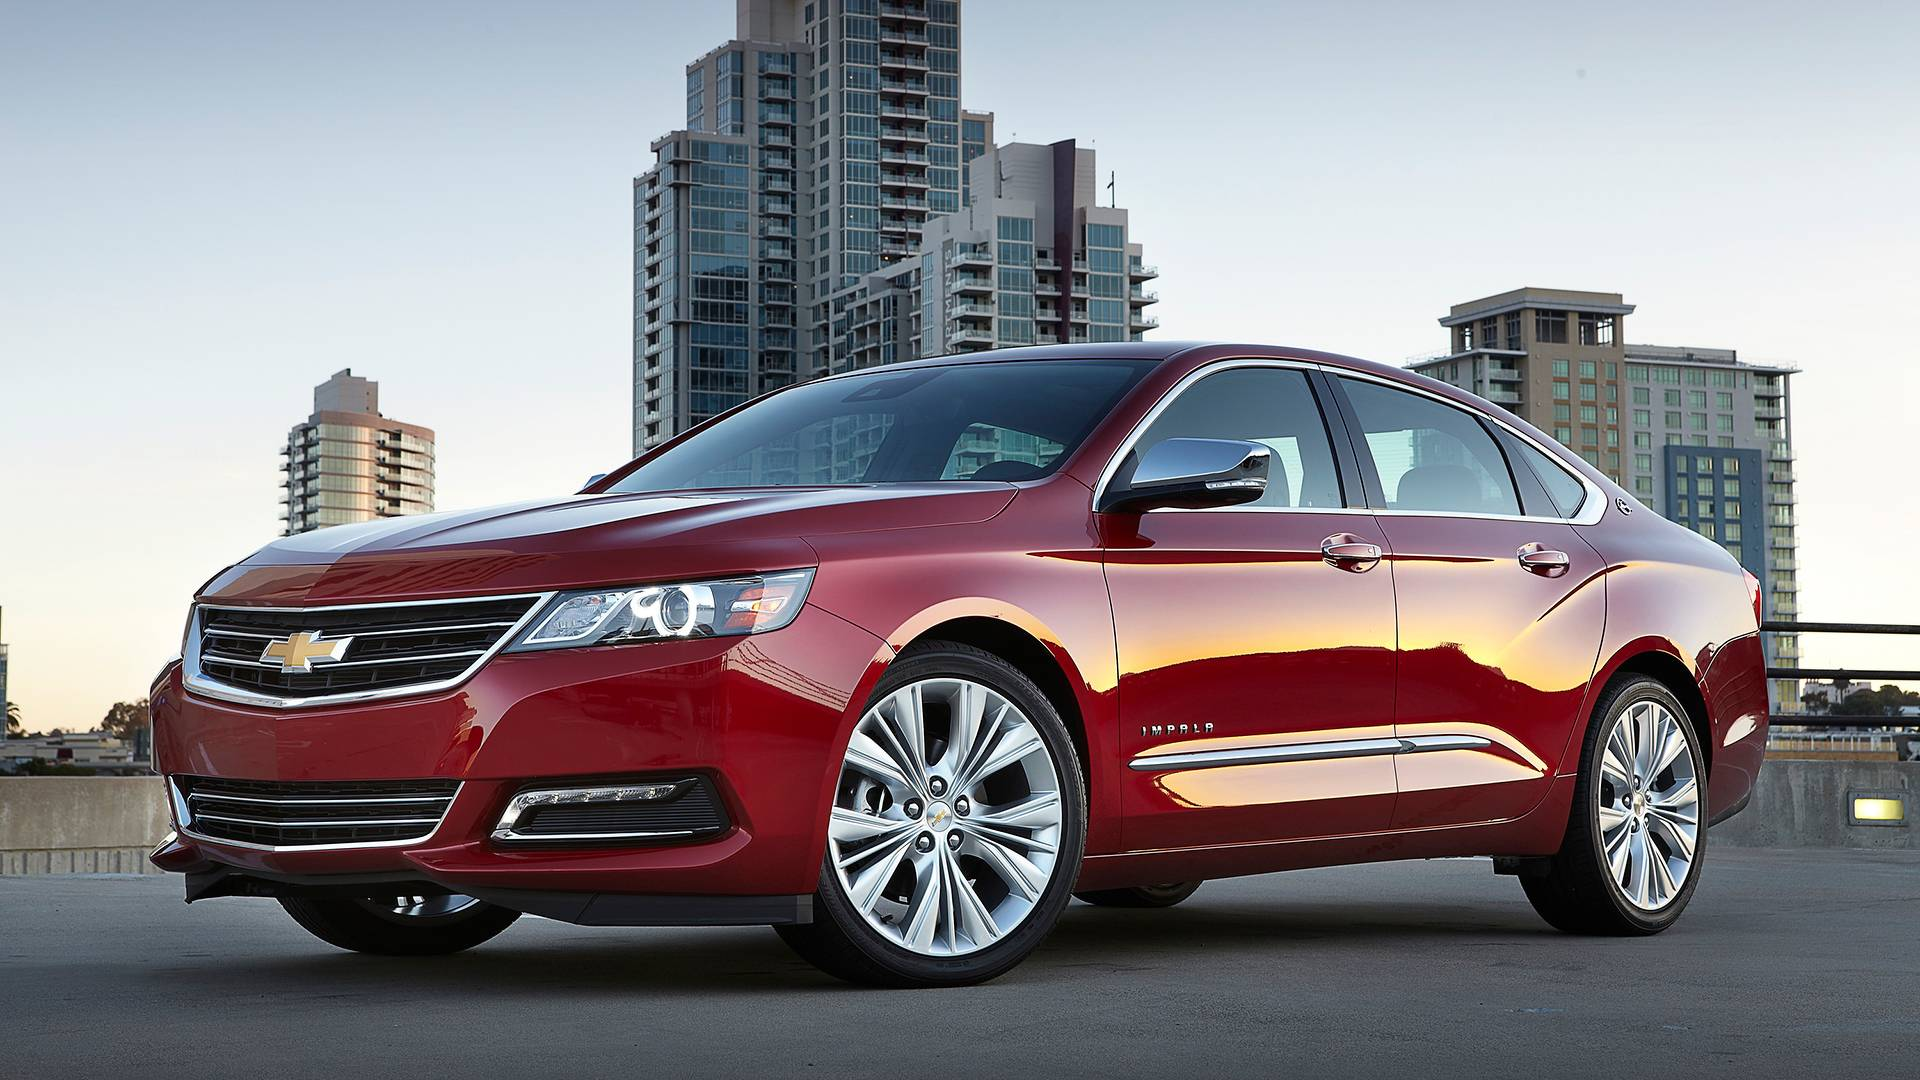 5 Chevy Impala Gets $5,5 Base Price Increase For Its Final Year